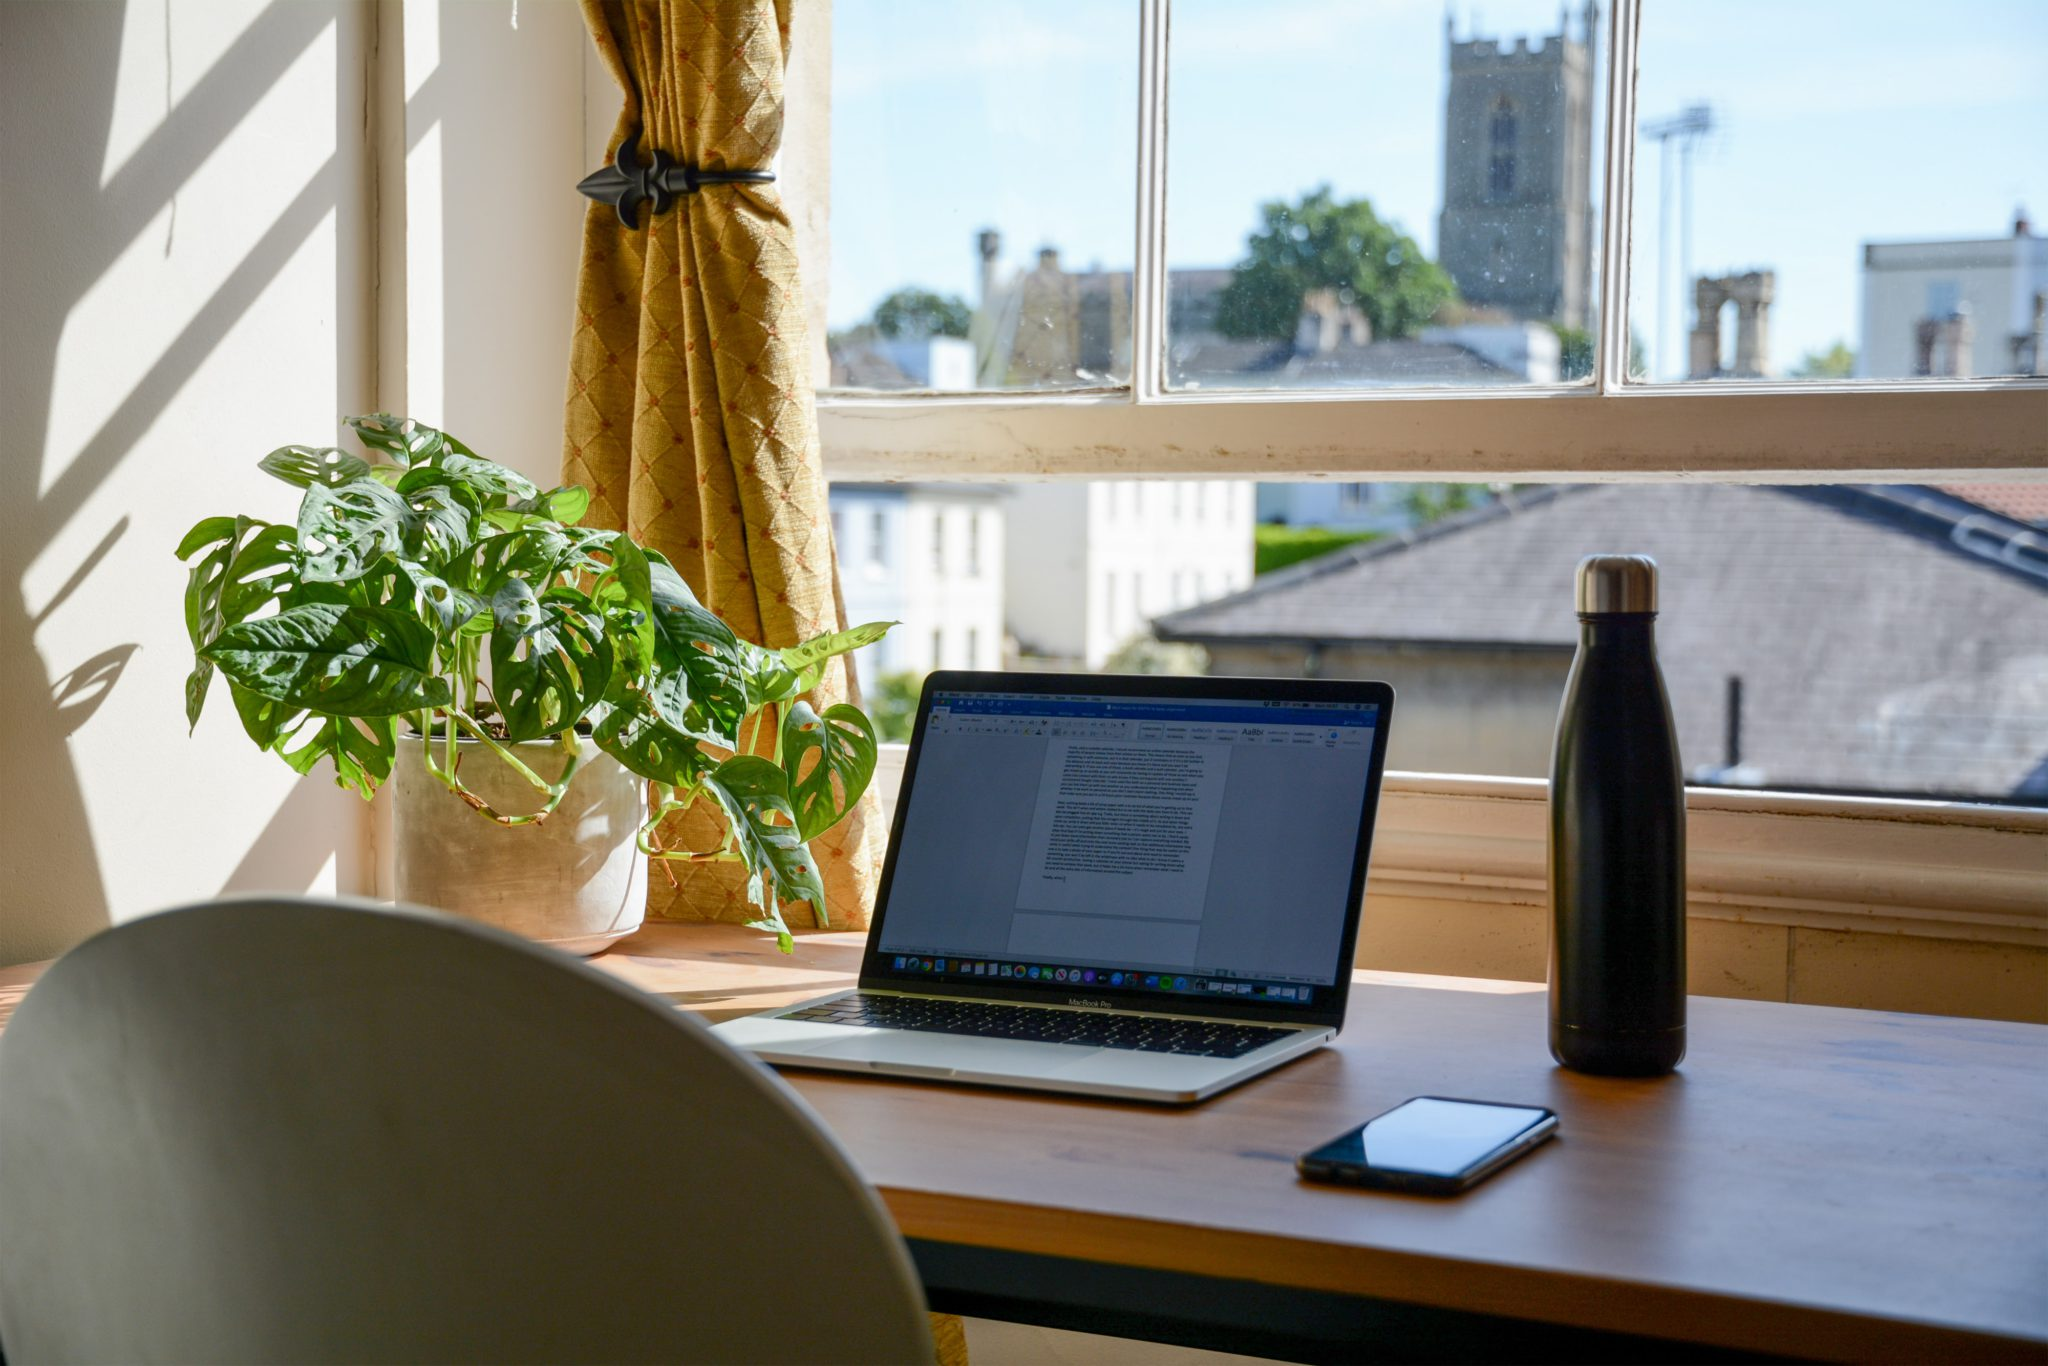 Working from home can sometimes lead to work burnout